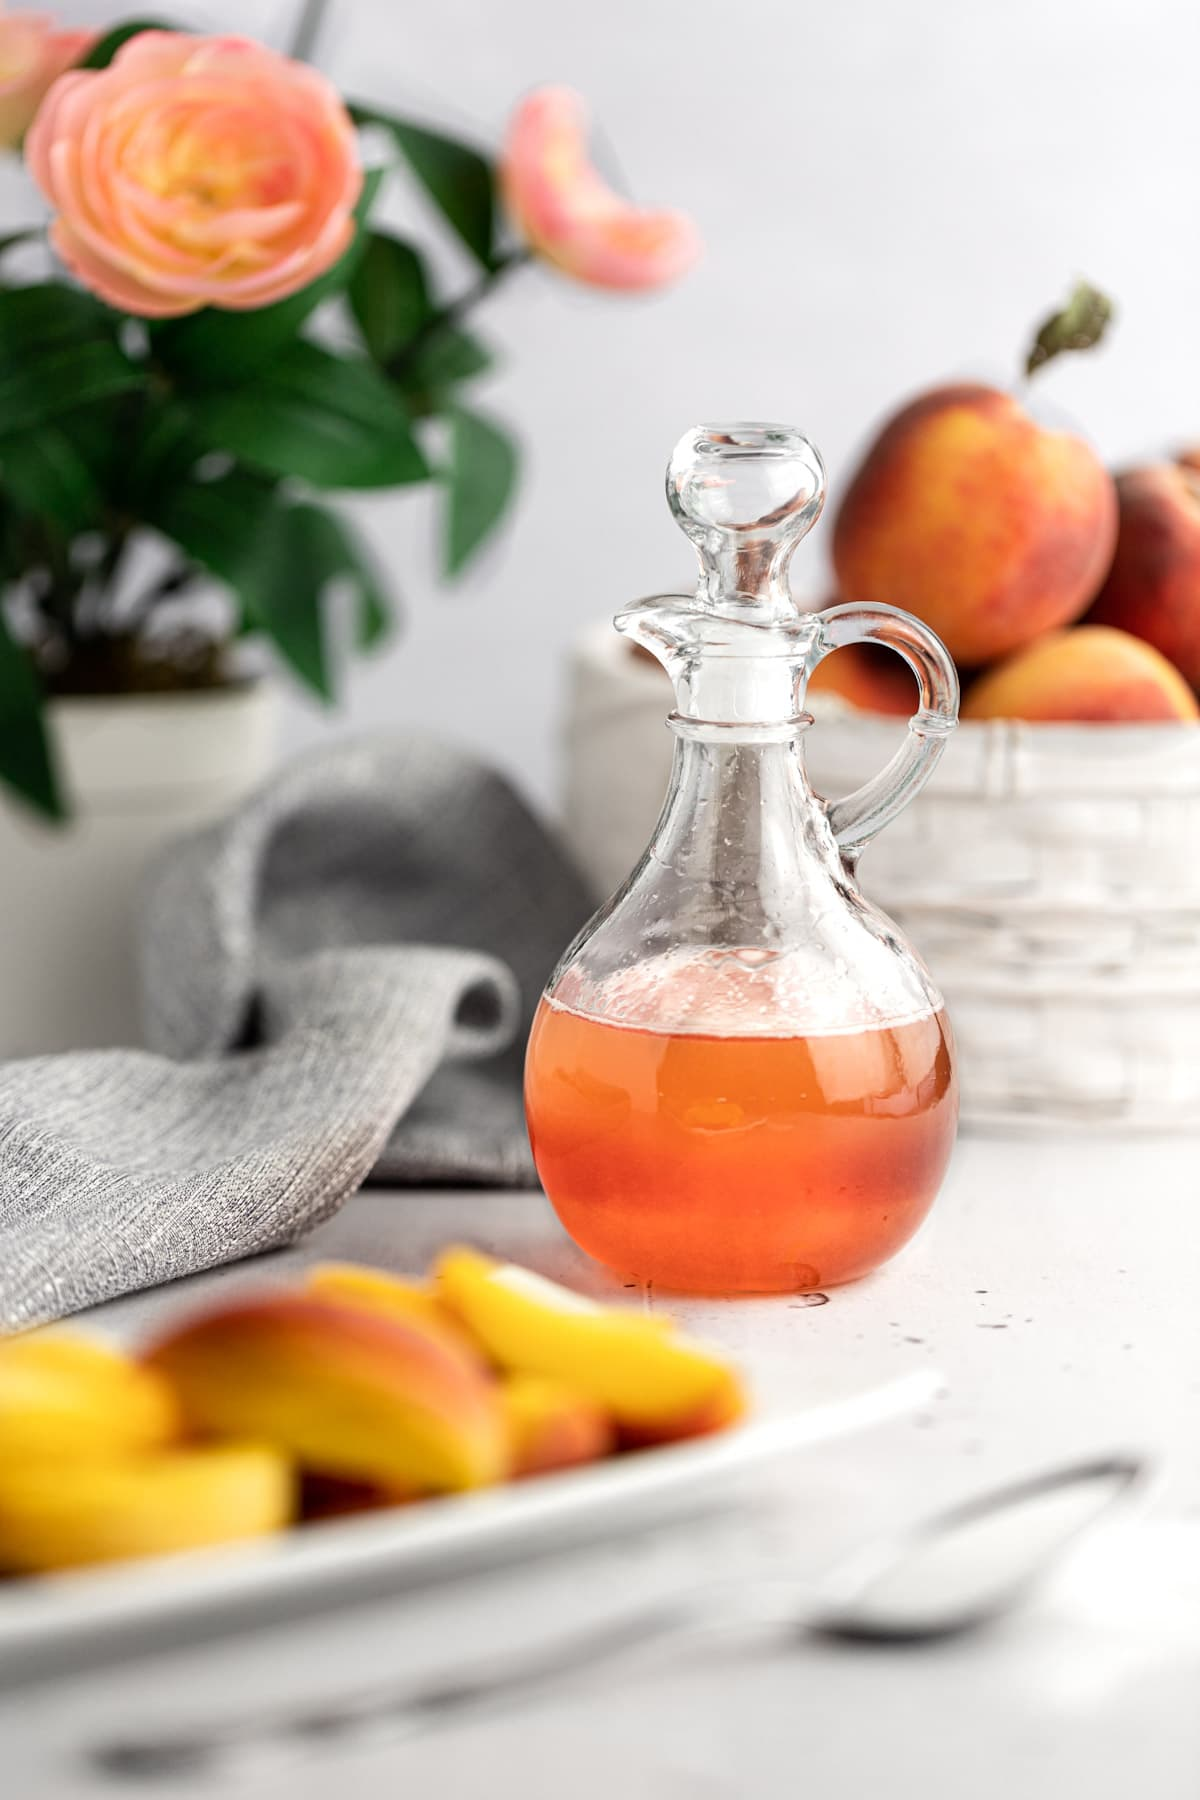 Peach syrup jar on a white table next to peach slices, a basket of peaches and pink flowers.